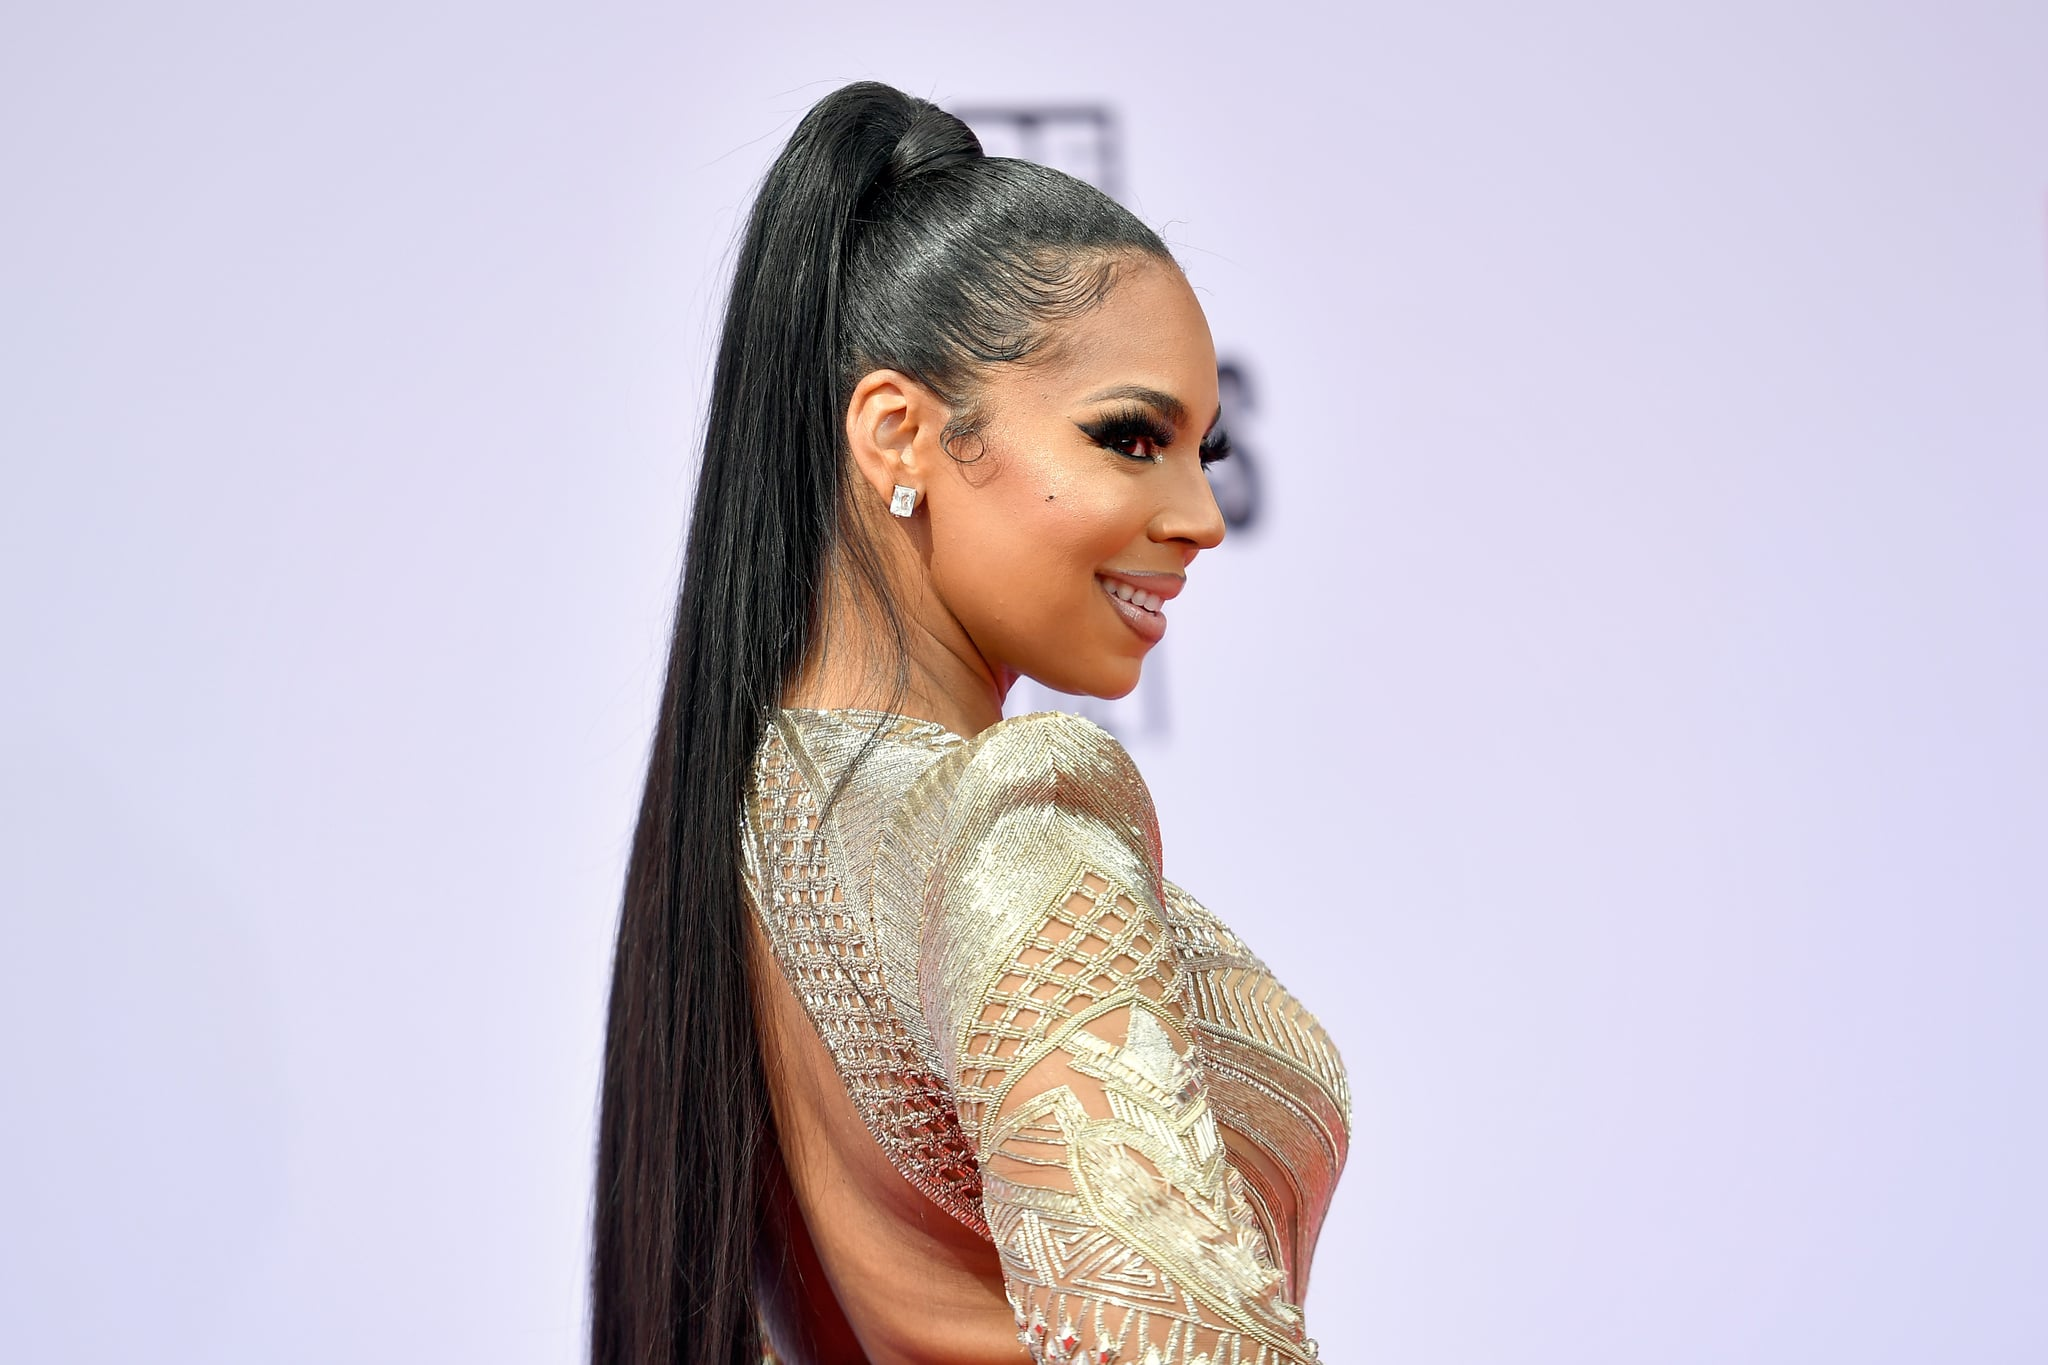 LOS ANGELES, CALIFORNIA - JUNE 27: Ashanti attends the BET Awards 2021 at Microsoft Theater on June 27, 2021 in Los Angeles, California. (Photo by Paras Griffin/Getty Images for BET)